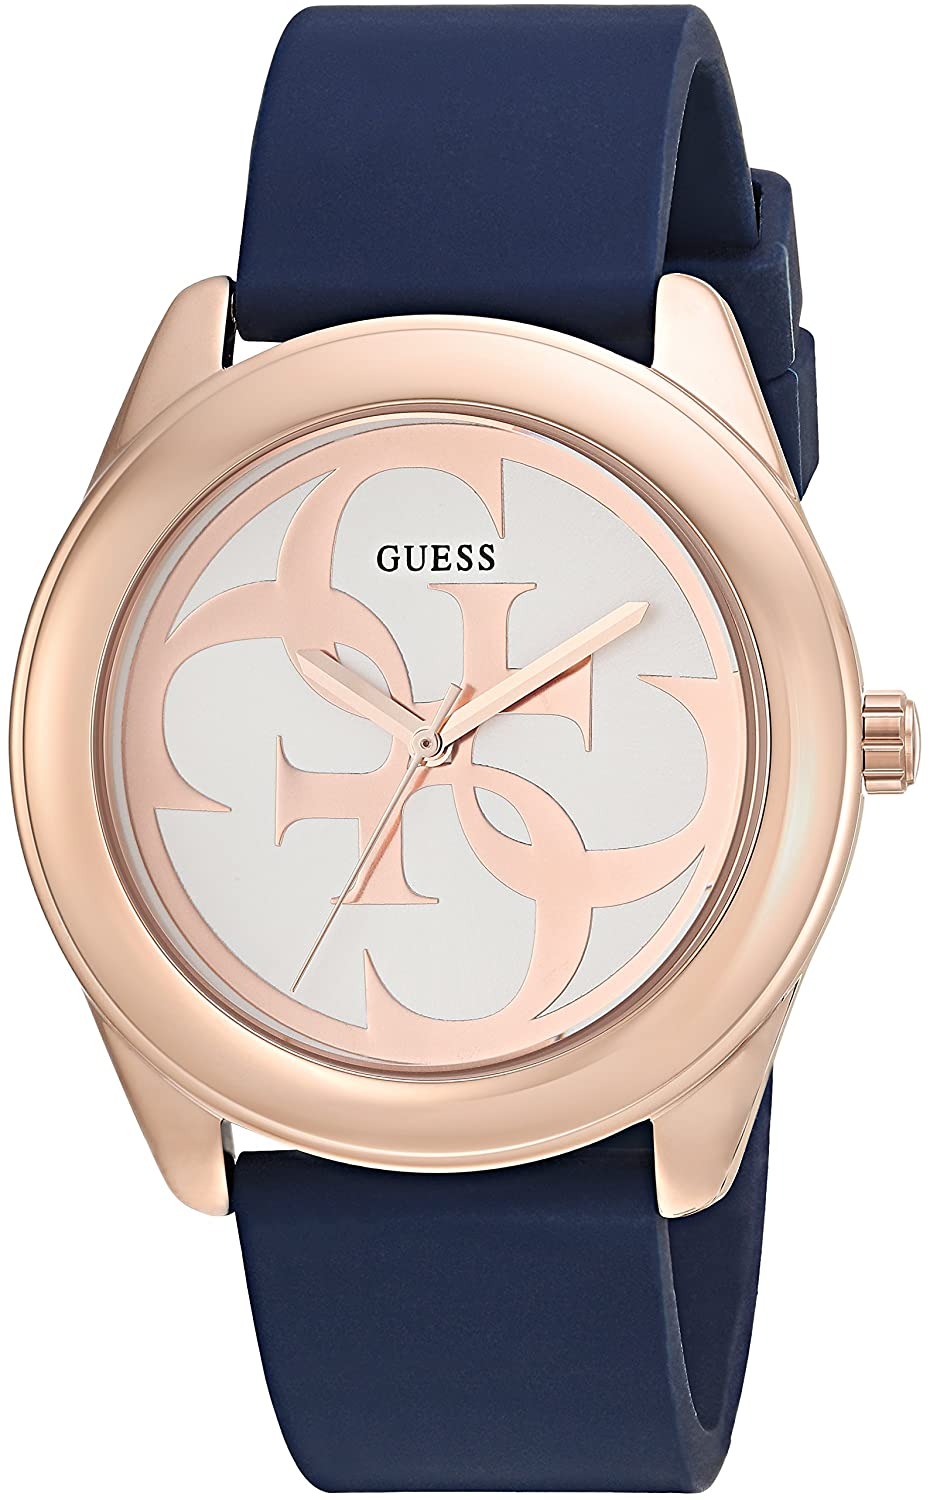 CDM product GUESS Women's Blue and Rose Gold-Tone Logo Watch big image